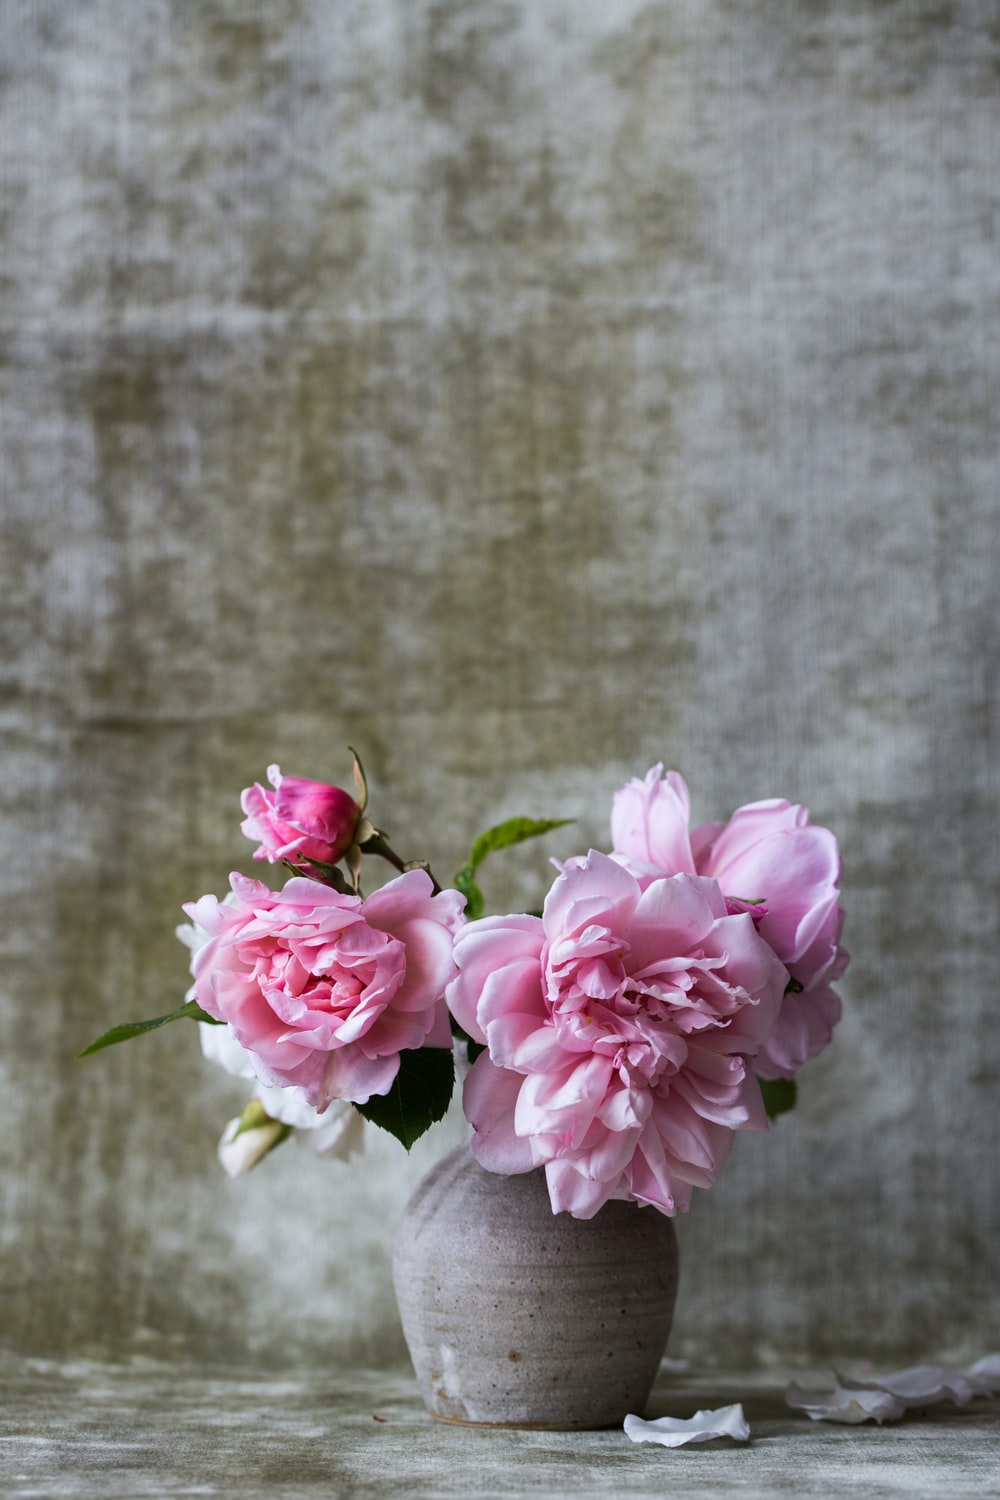 Peony vase photo by alexandra seinet alexseinet on unsplash mini pink flower bouquet in gray vase with textured wall background in spring mightylinksfo